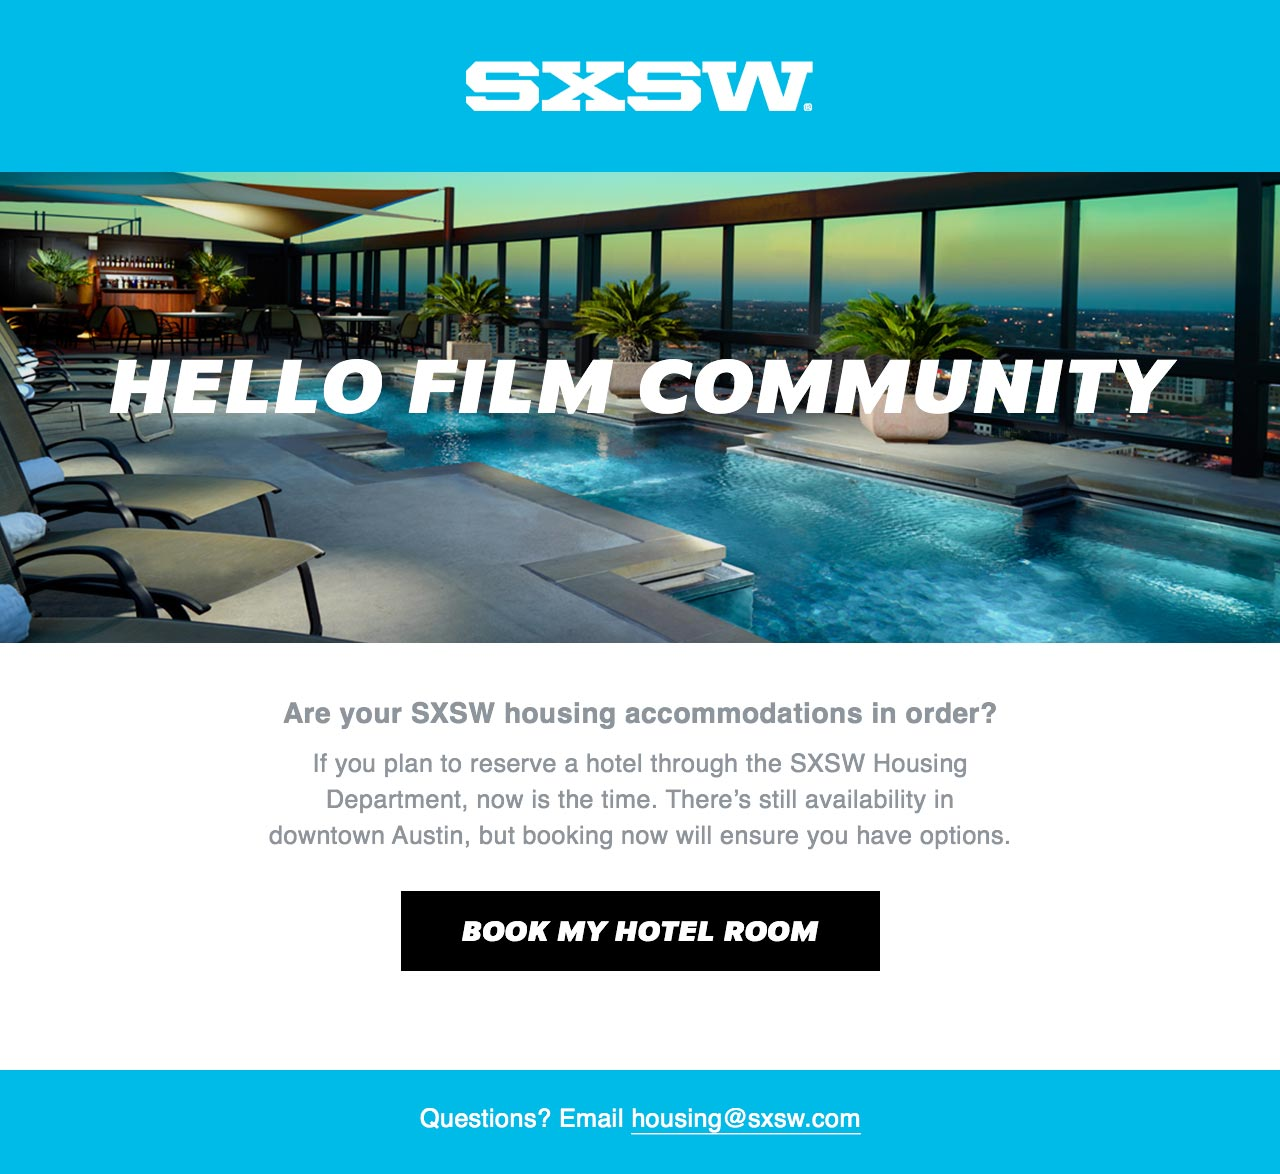 segmented and personalized message about sxsw film festival hotel booking